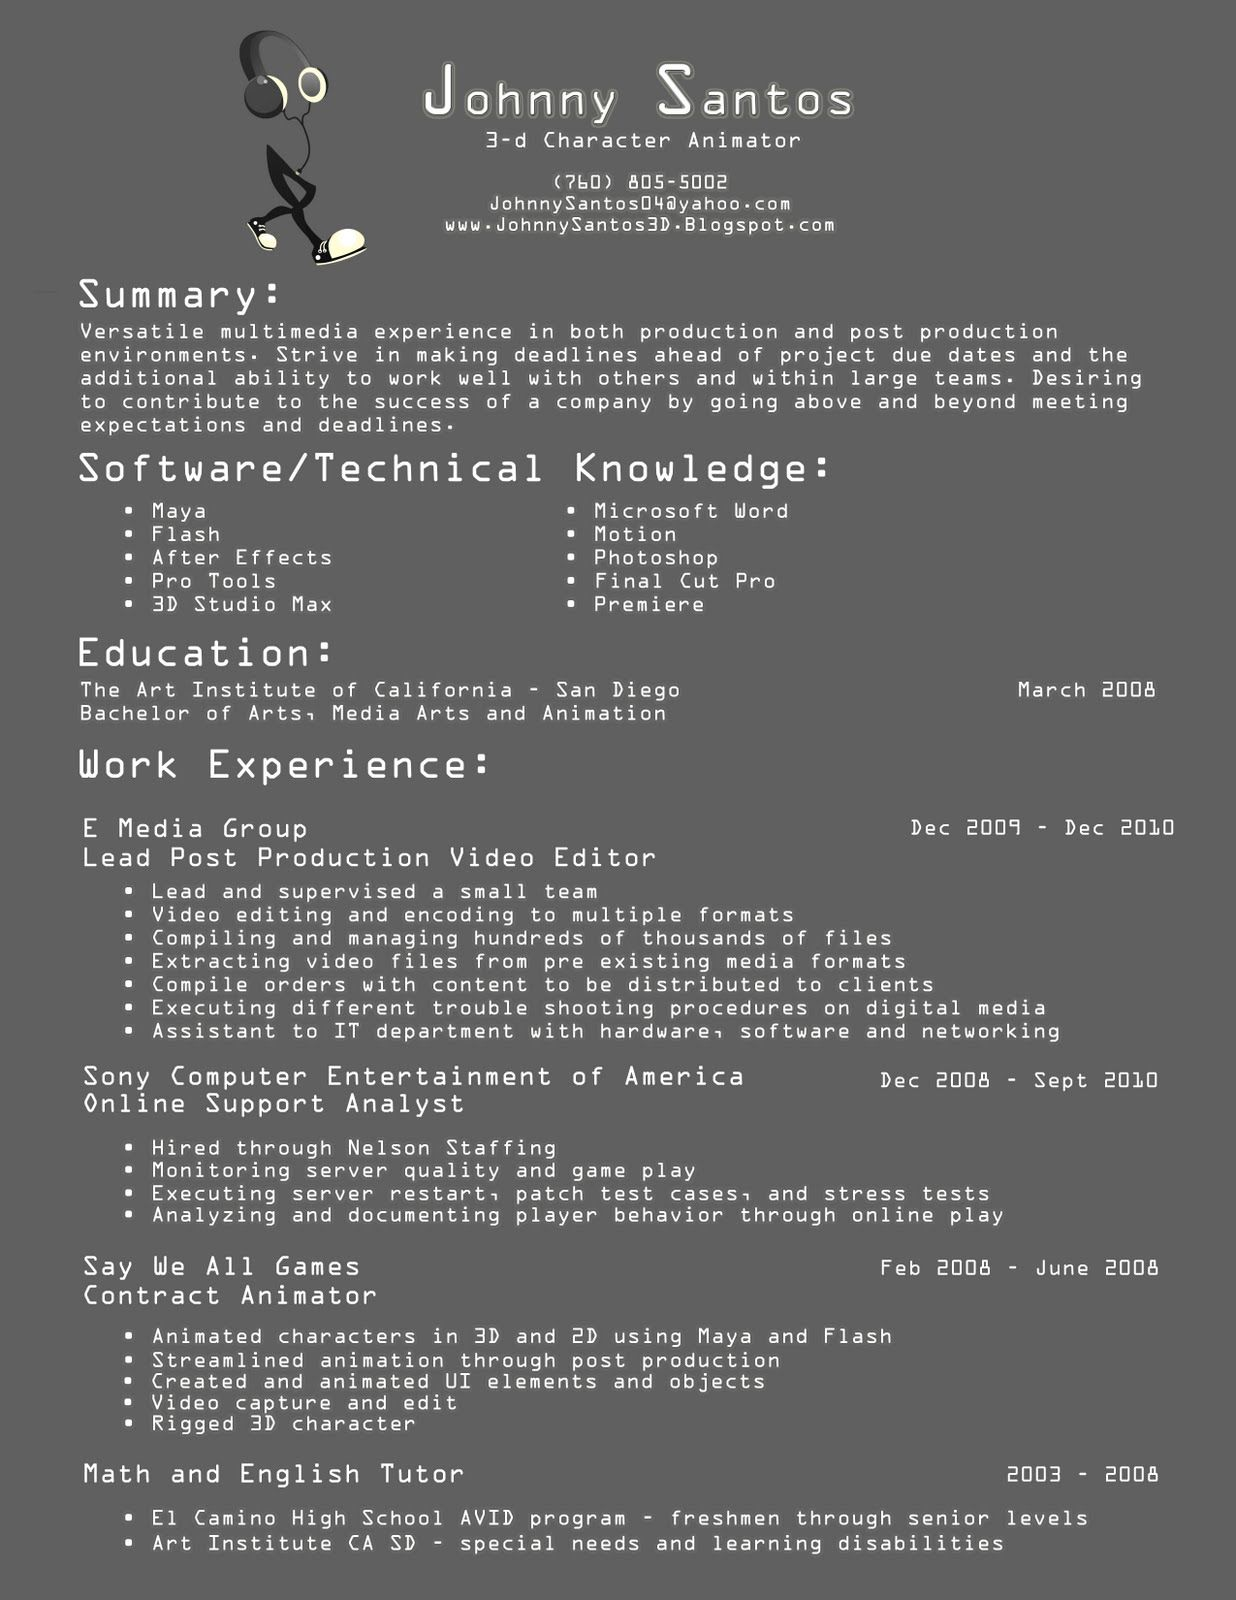 learning disabilities specialist sample resume powerline